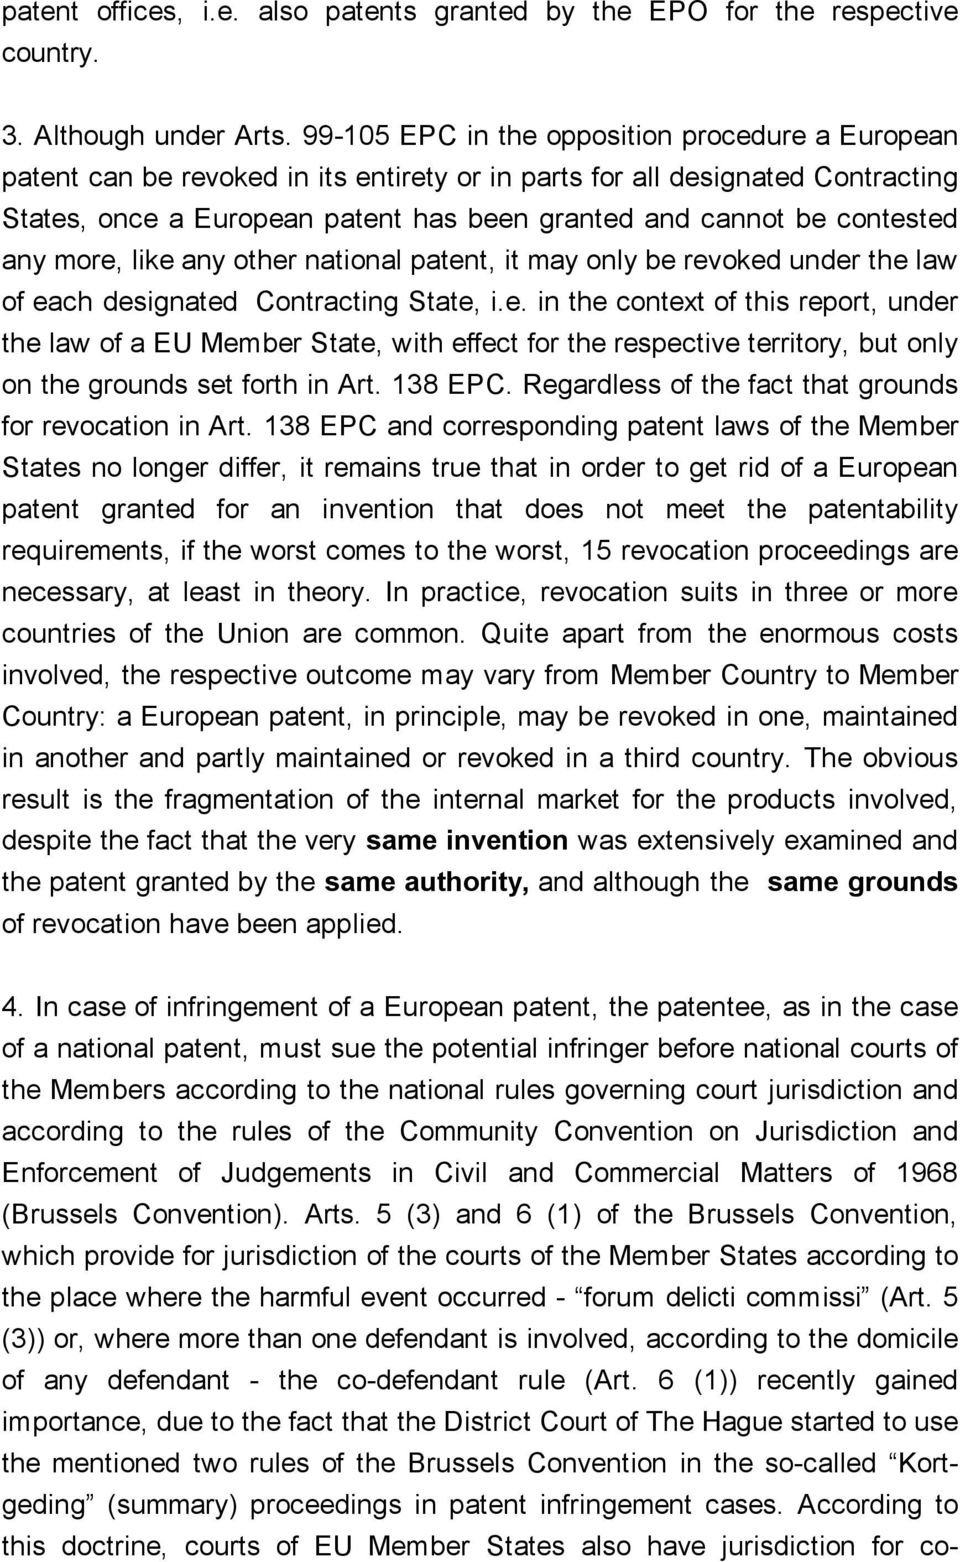 contested any more, like any other national patent, it may only be revoked under the law of each designated Contracting State, i.e. in the context of this report, under the law of a EU Member State, with effect for the respective territory, but only on the grounds set forth in Art.